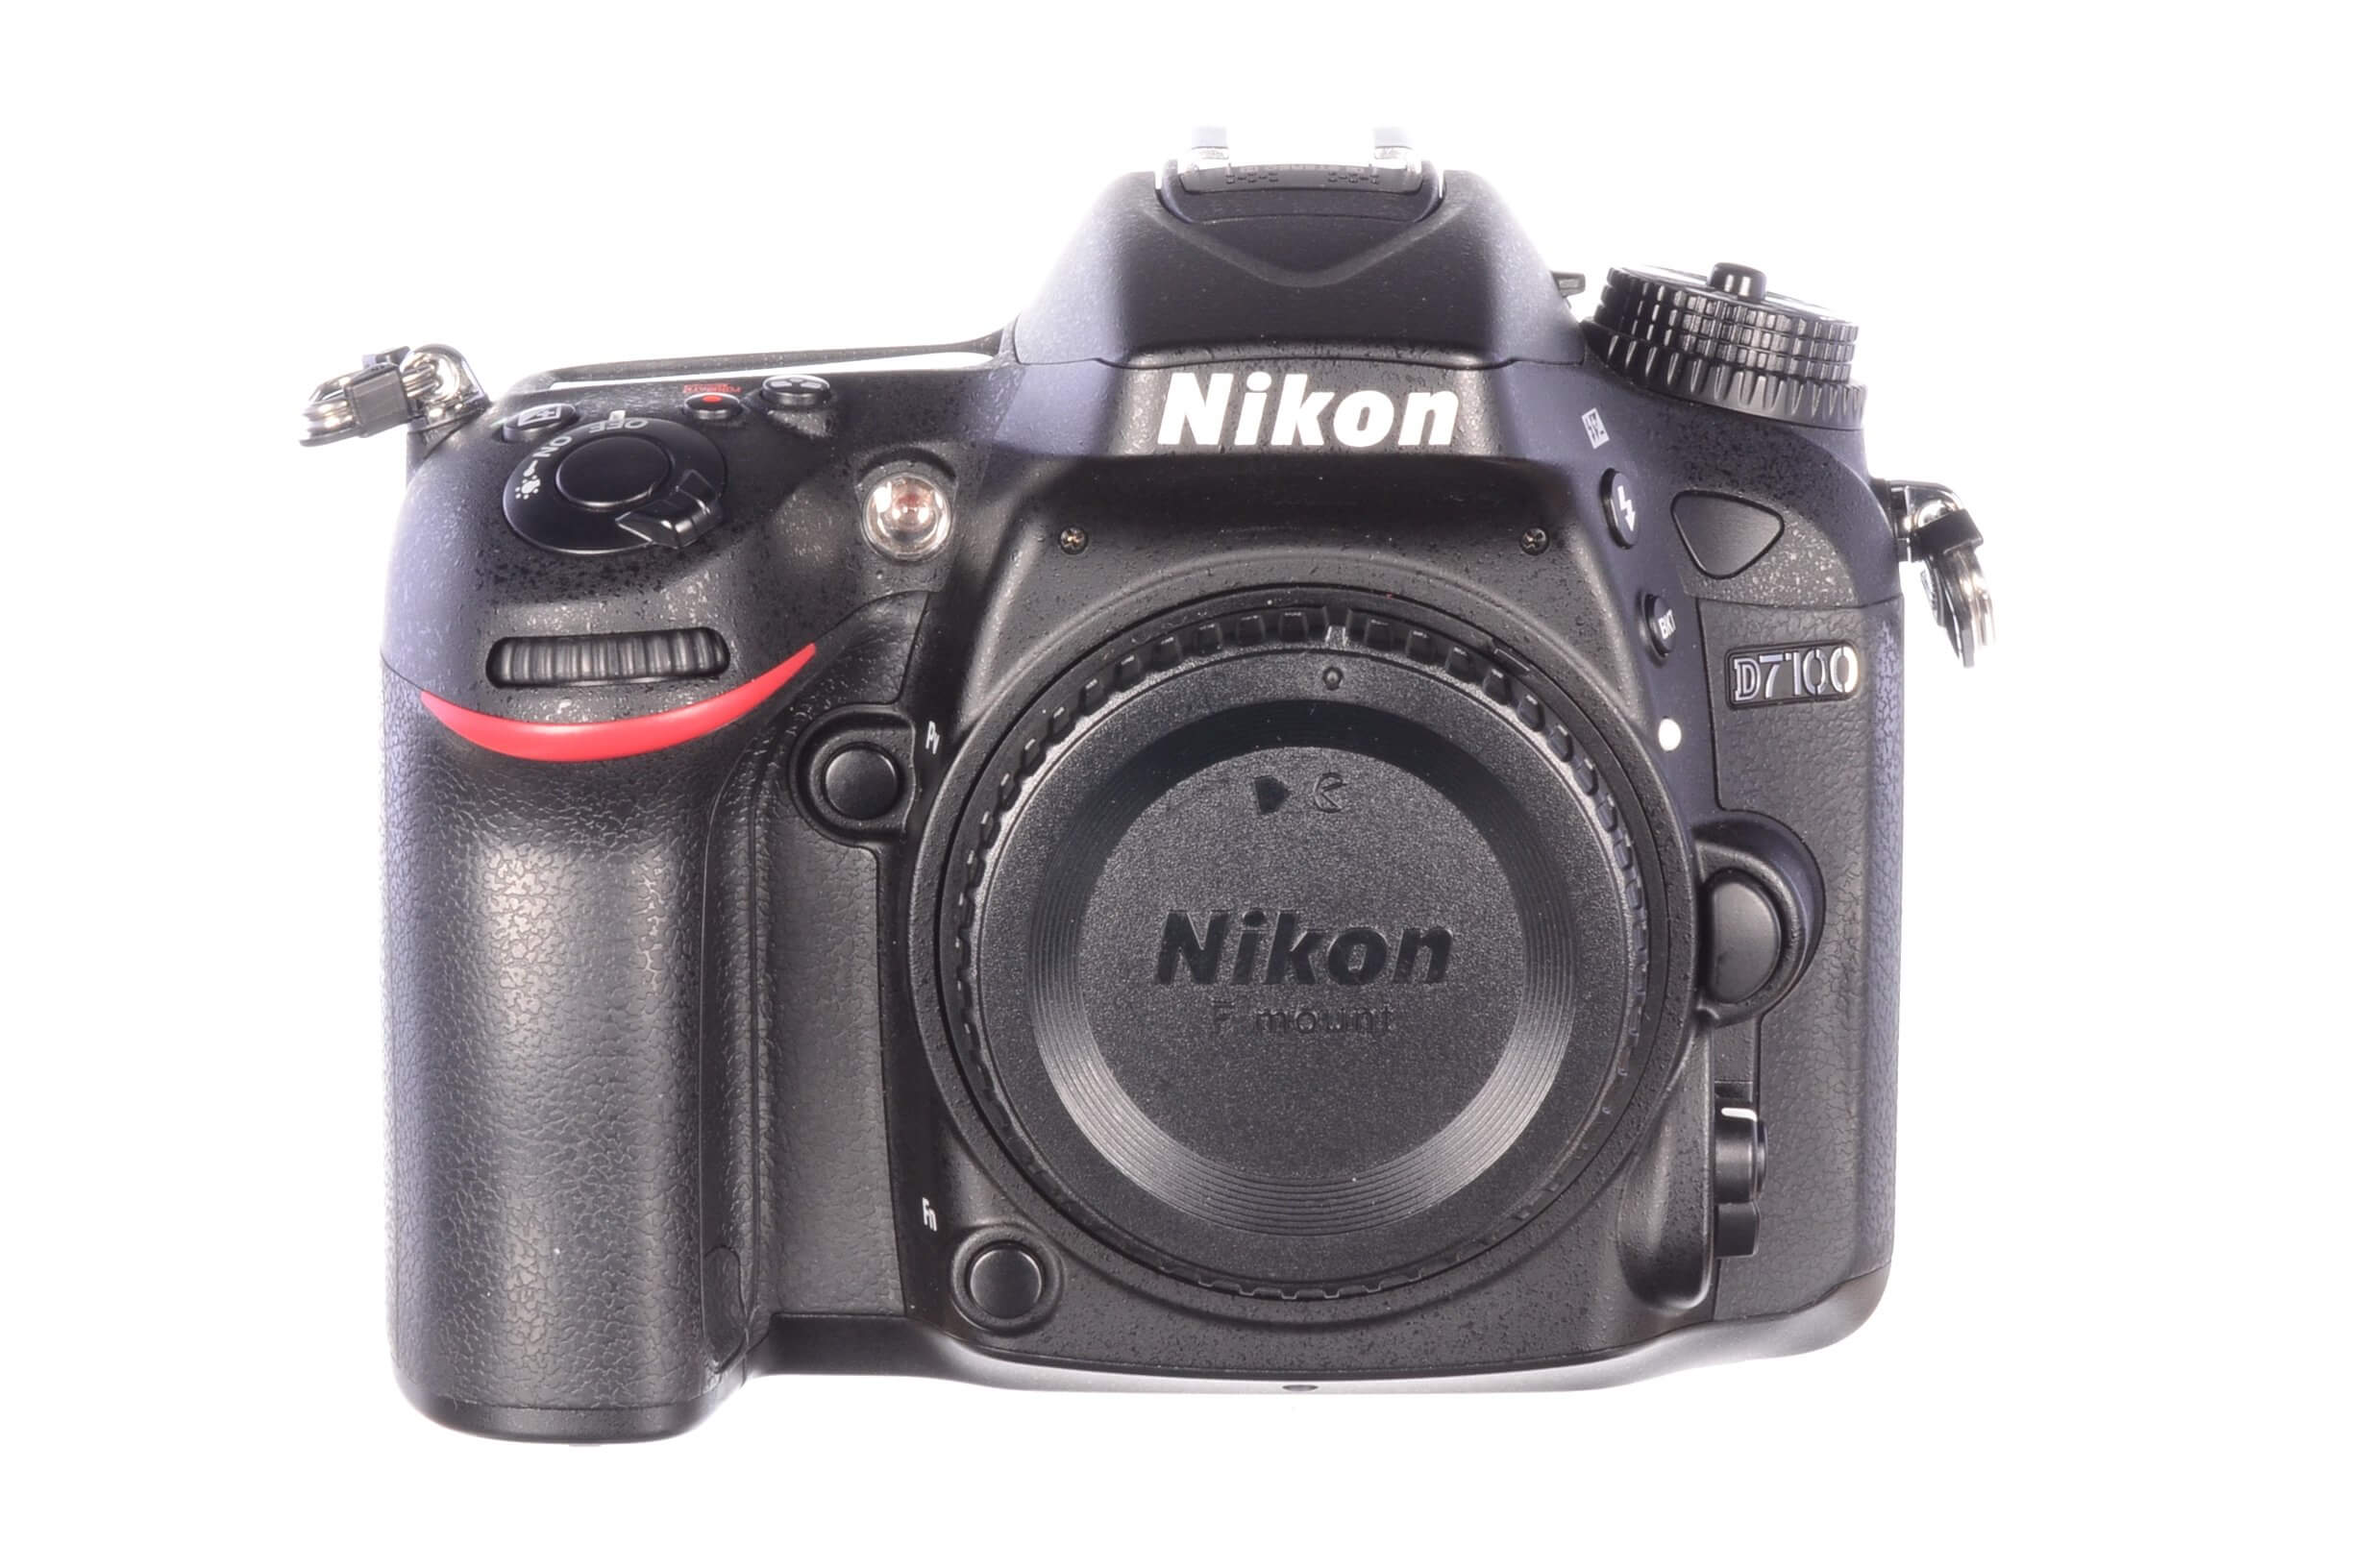 Nikon D7100 body, 5750 actuations, almost mint